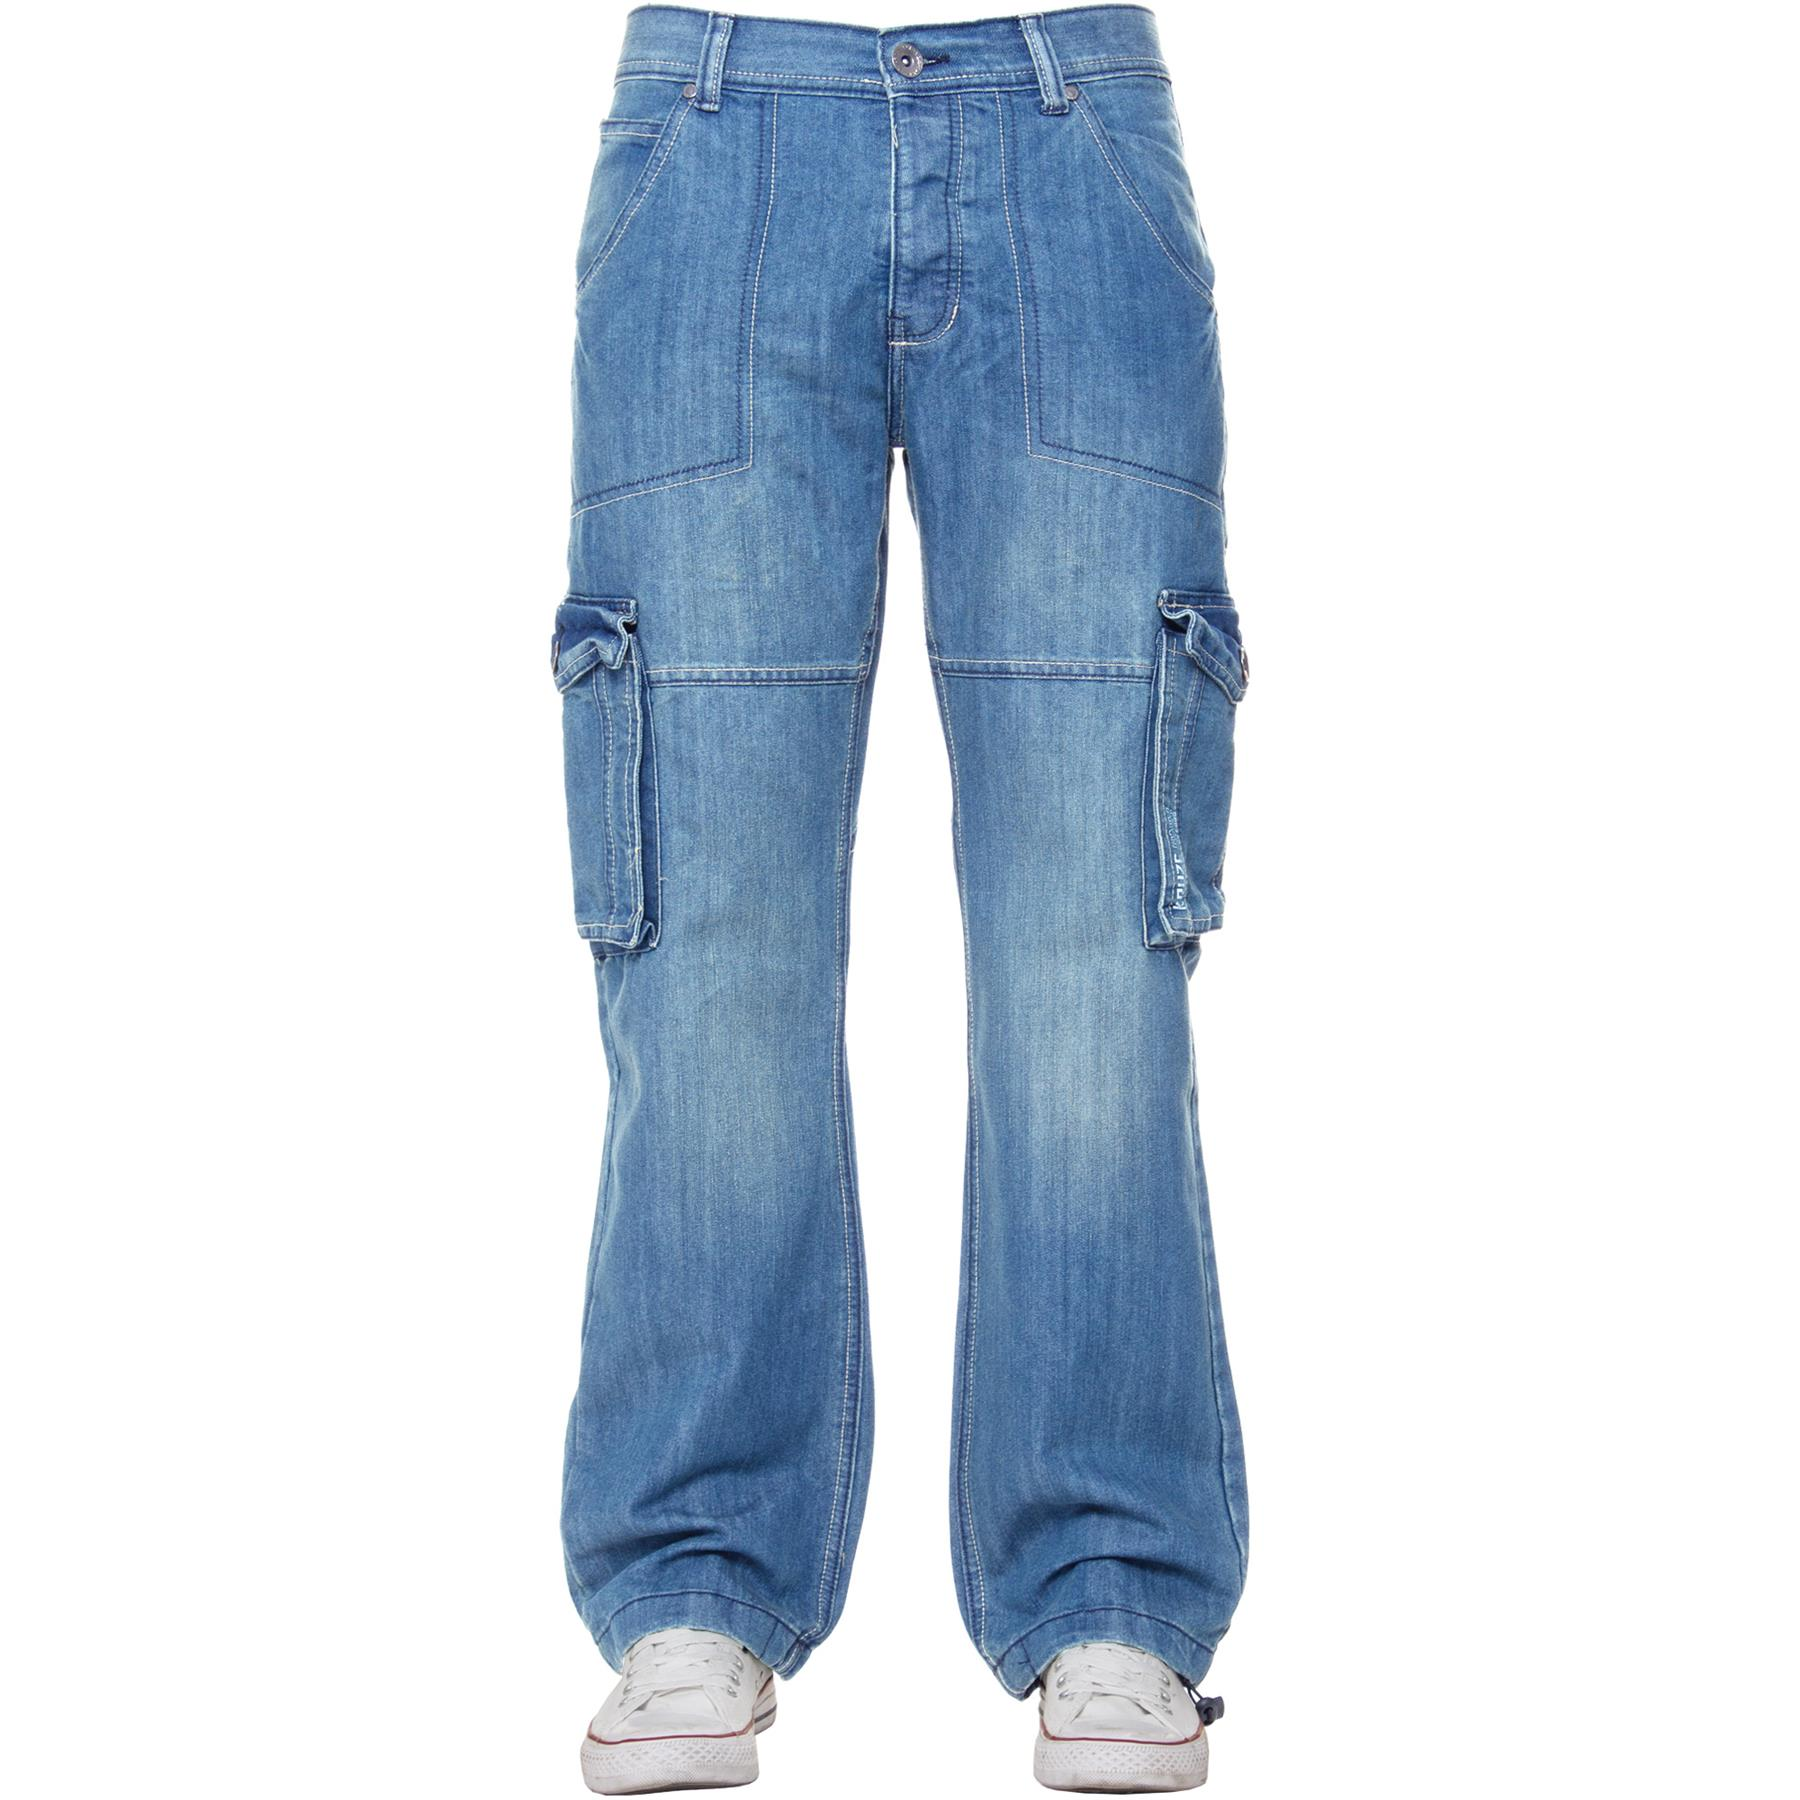 Kruze-Mens-Combat-Jeans-Casual-Cargo-Work-Denim-Trousers-Big-Tall-All-Waists thumbnail 15